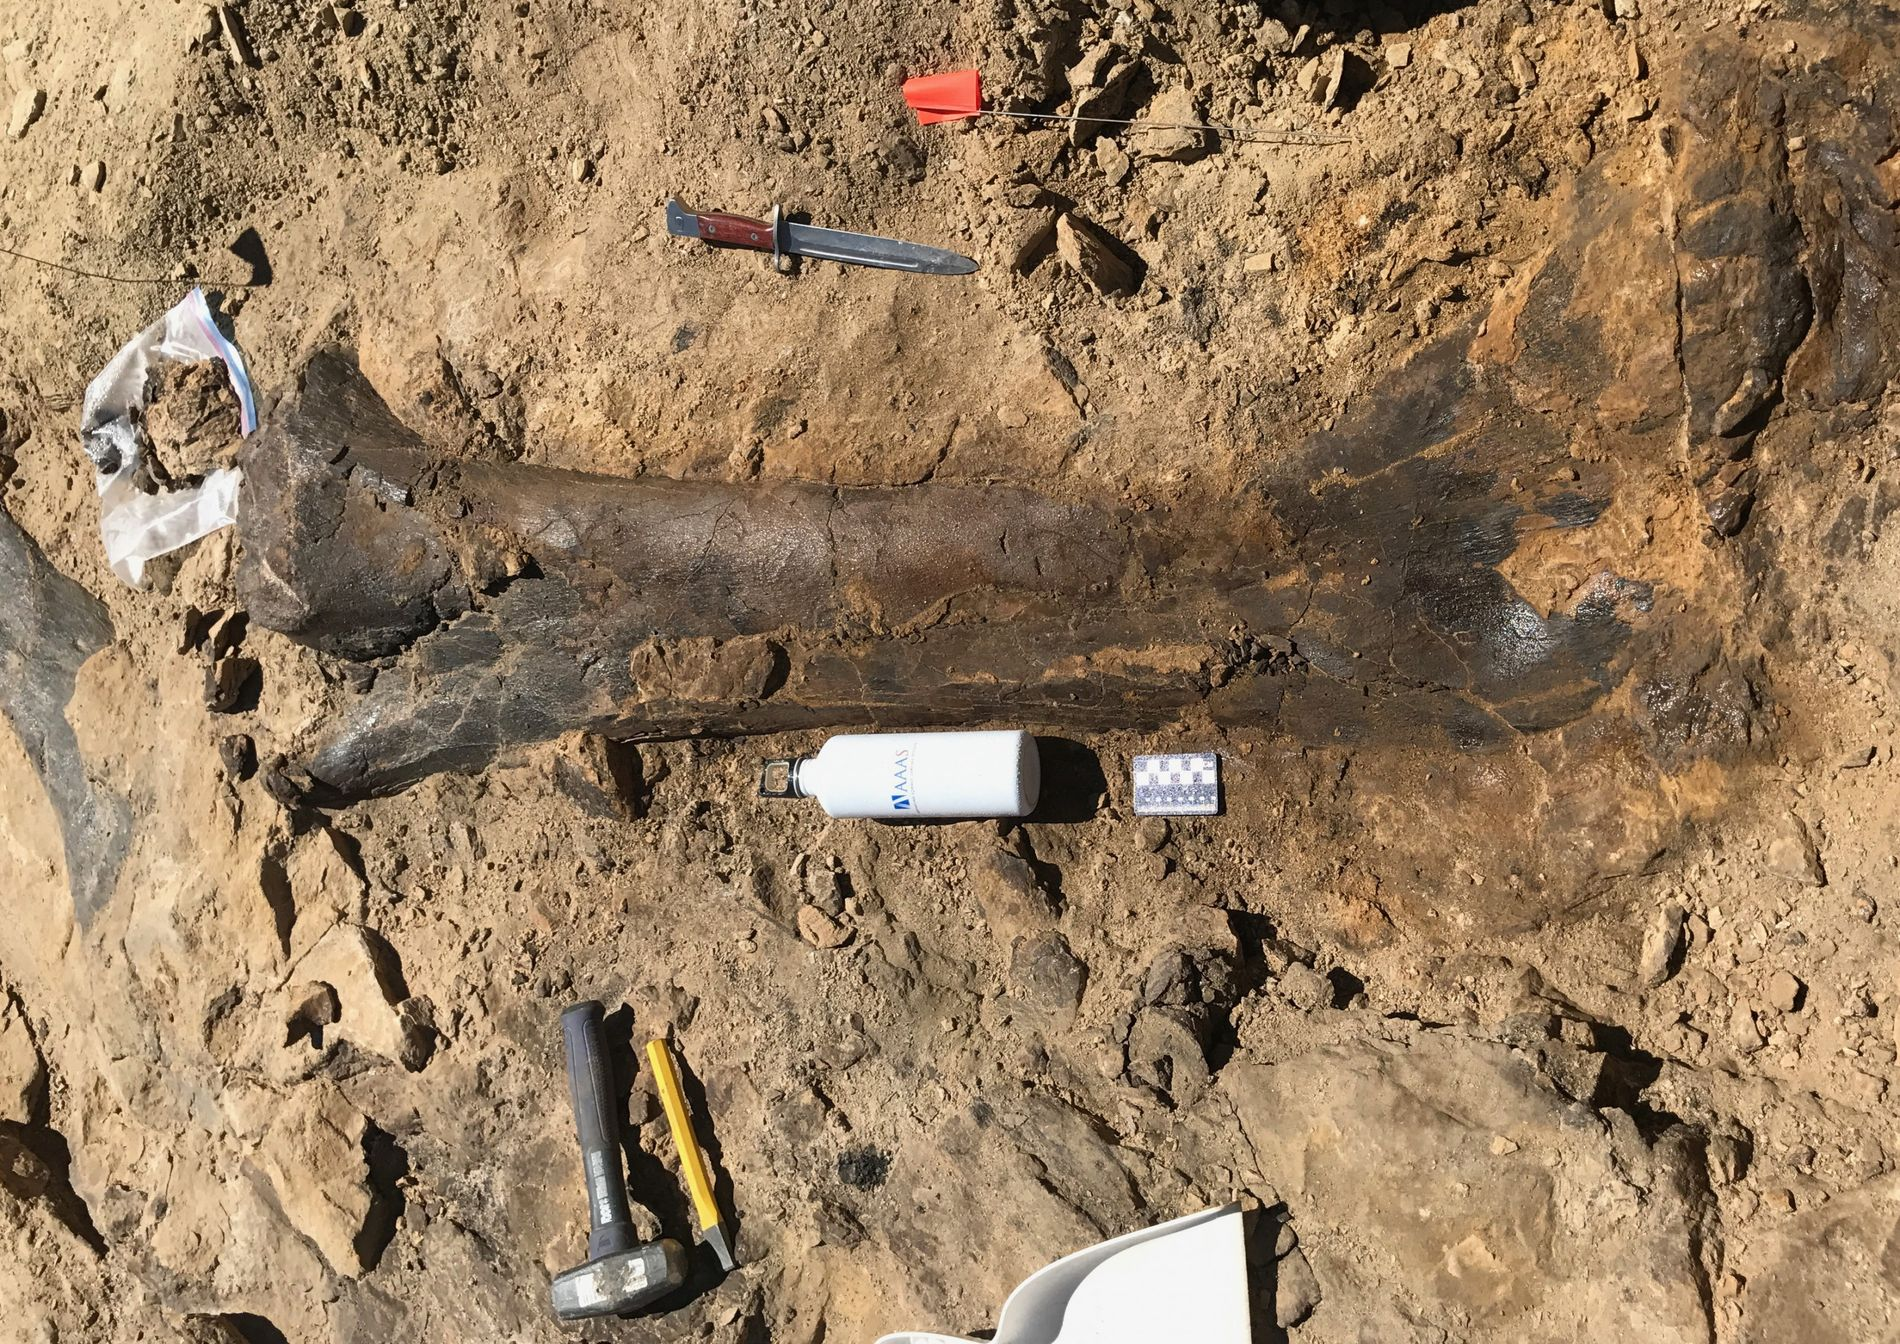 """An embarrassment of riches."" A sauropod femur emerges from the rock at the Jurassic Mile dig ..."